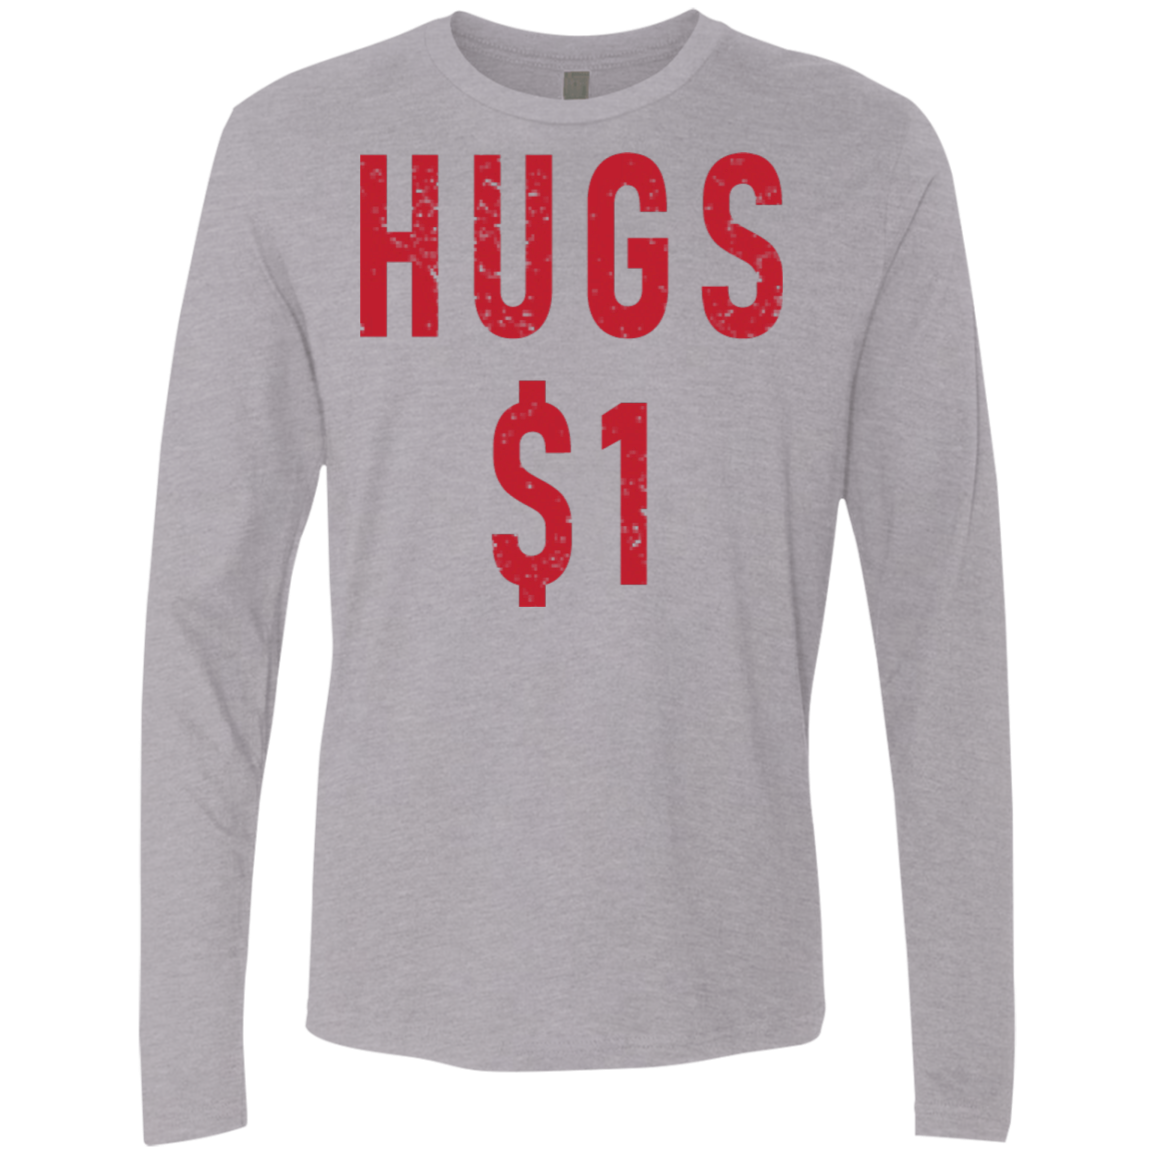 Hugs $1 Men's Long Sleeve Tee